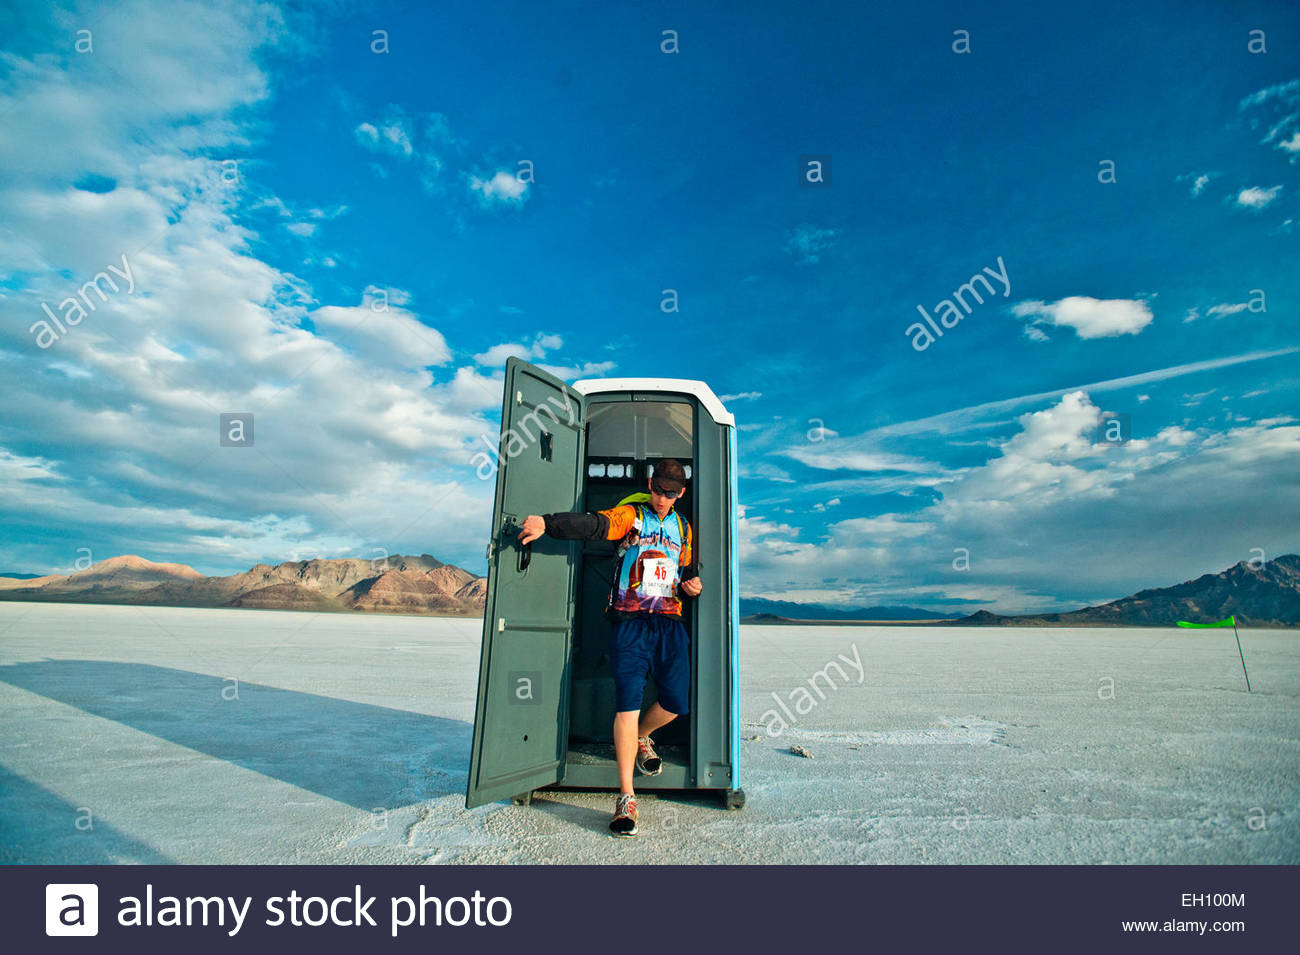 A competitor steps out of a porta-potty during the Salt Flats 100 in Bonneville, Utah. - Stock Image